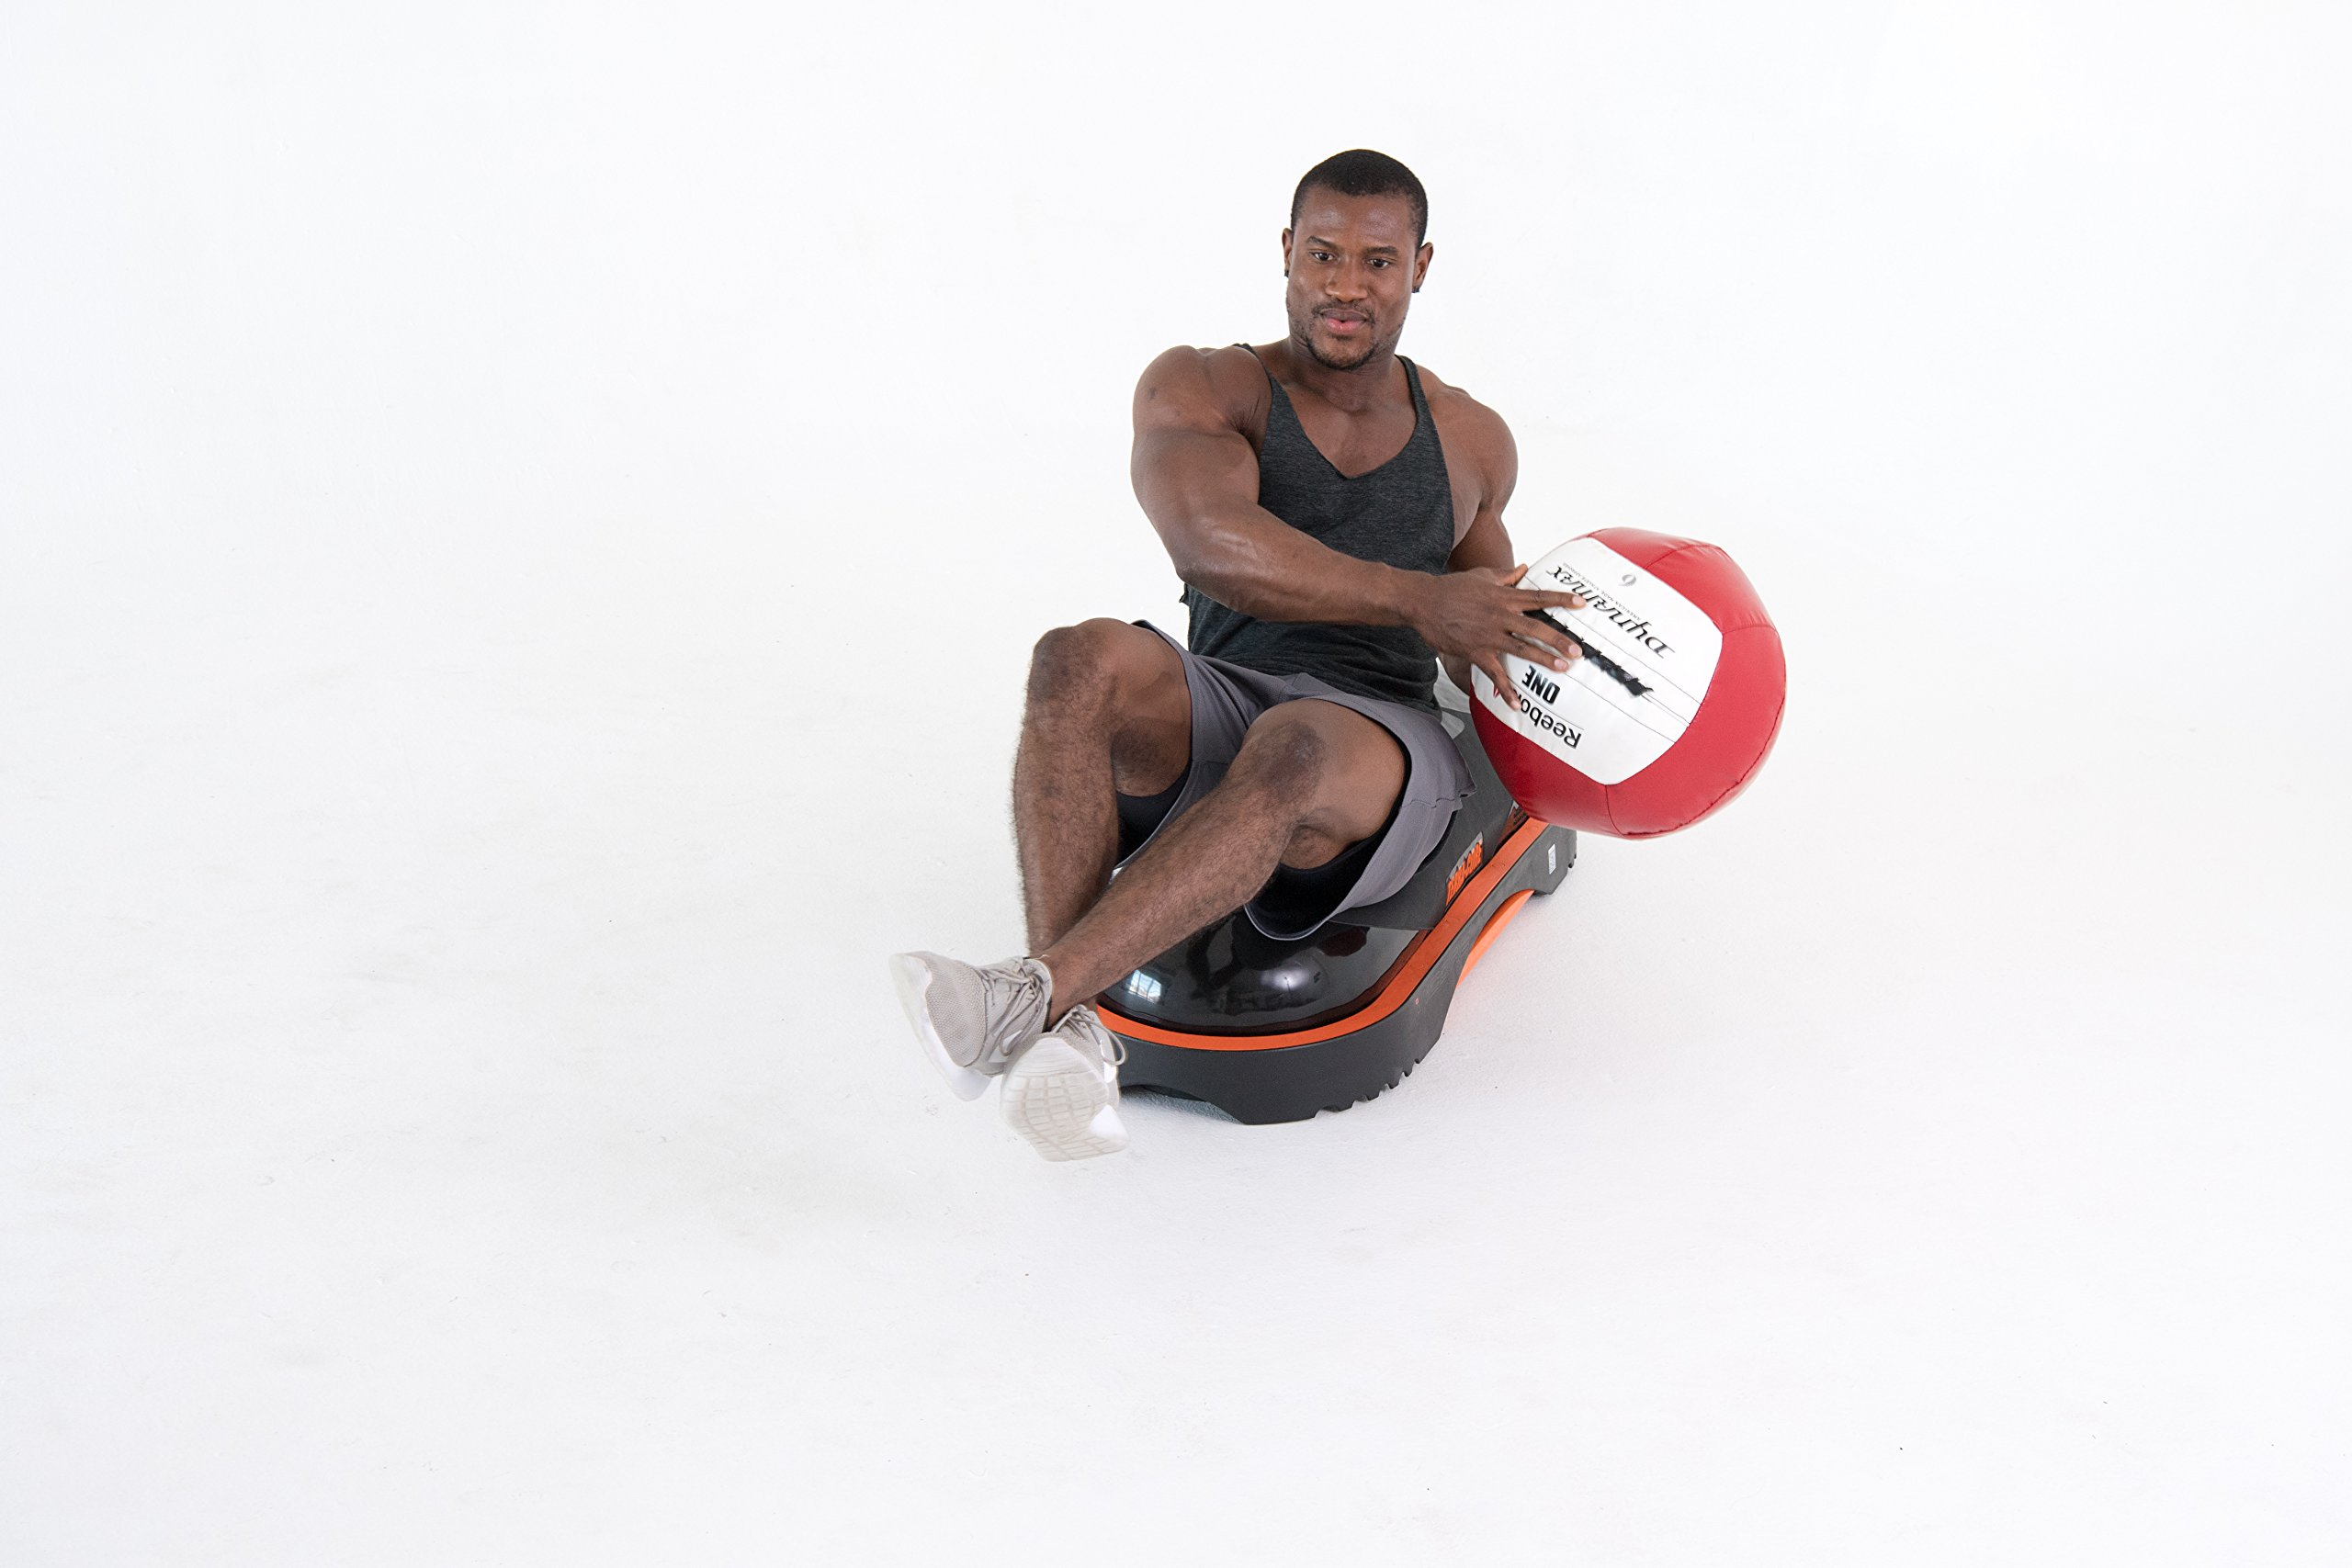 Terra Core Balance Trainer, Stability, Agility, Strength, Functional Fitness, Core Exercises, Abs Workout, Pushups, Weight Bench. by Vicore Fitness (Image #9)